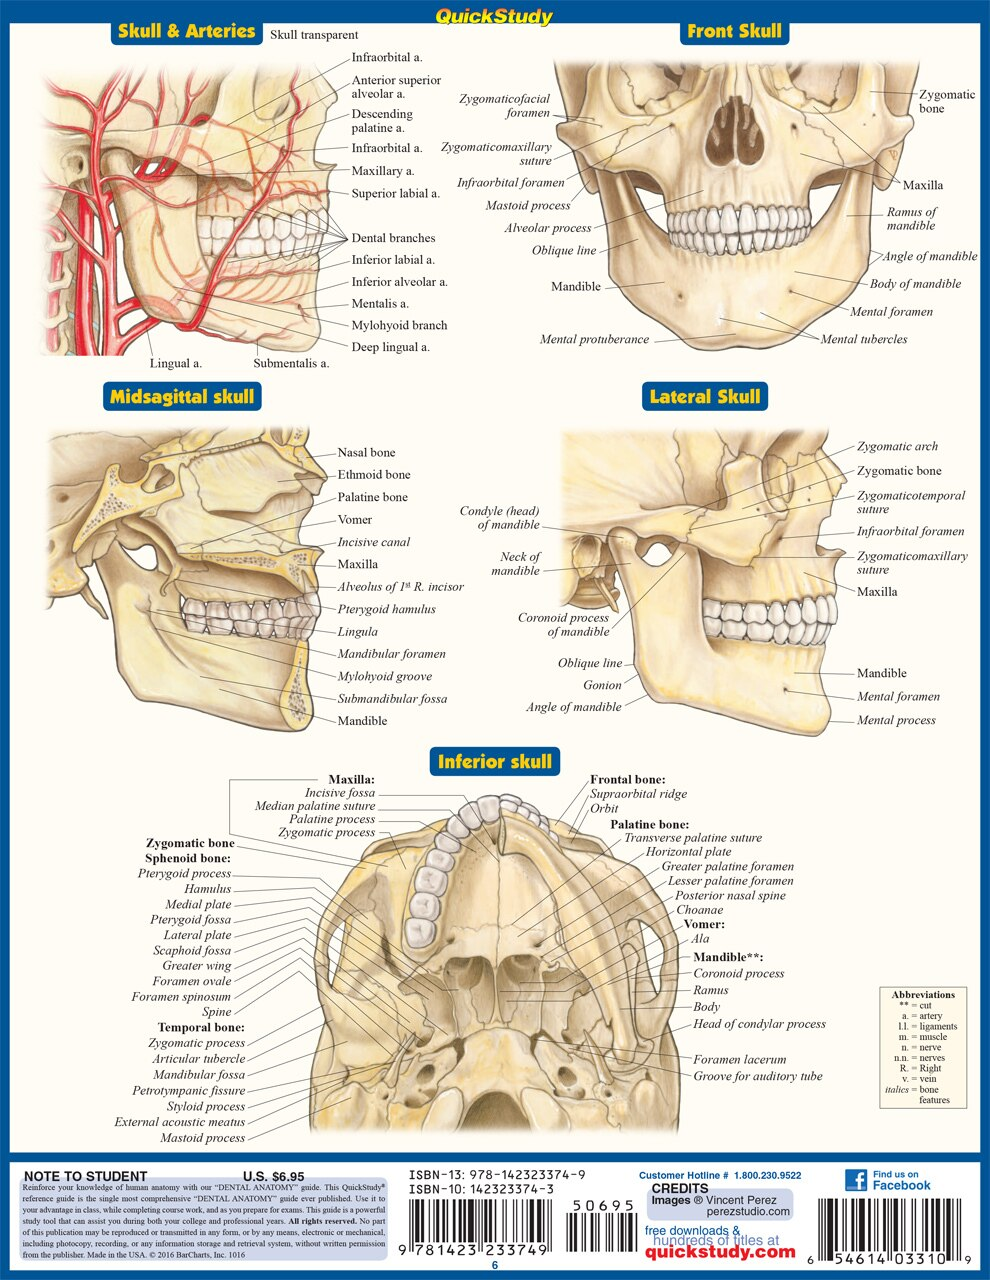 QuickStudy Quick Study Dental Anatomy Laminated Study Guide BarCharts Publishing Medical Study Guide Back Image